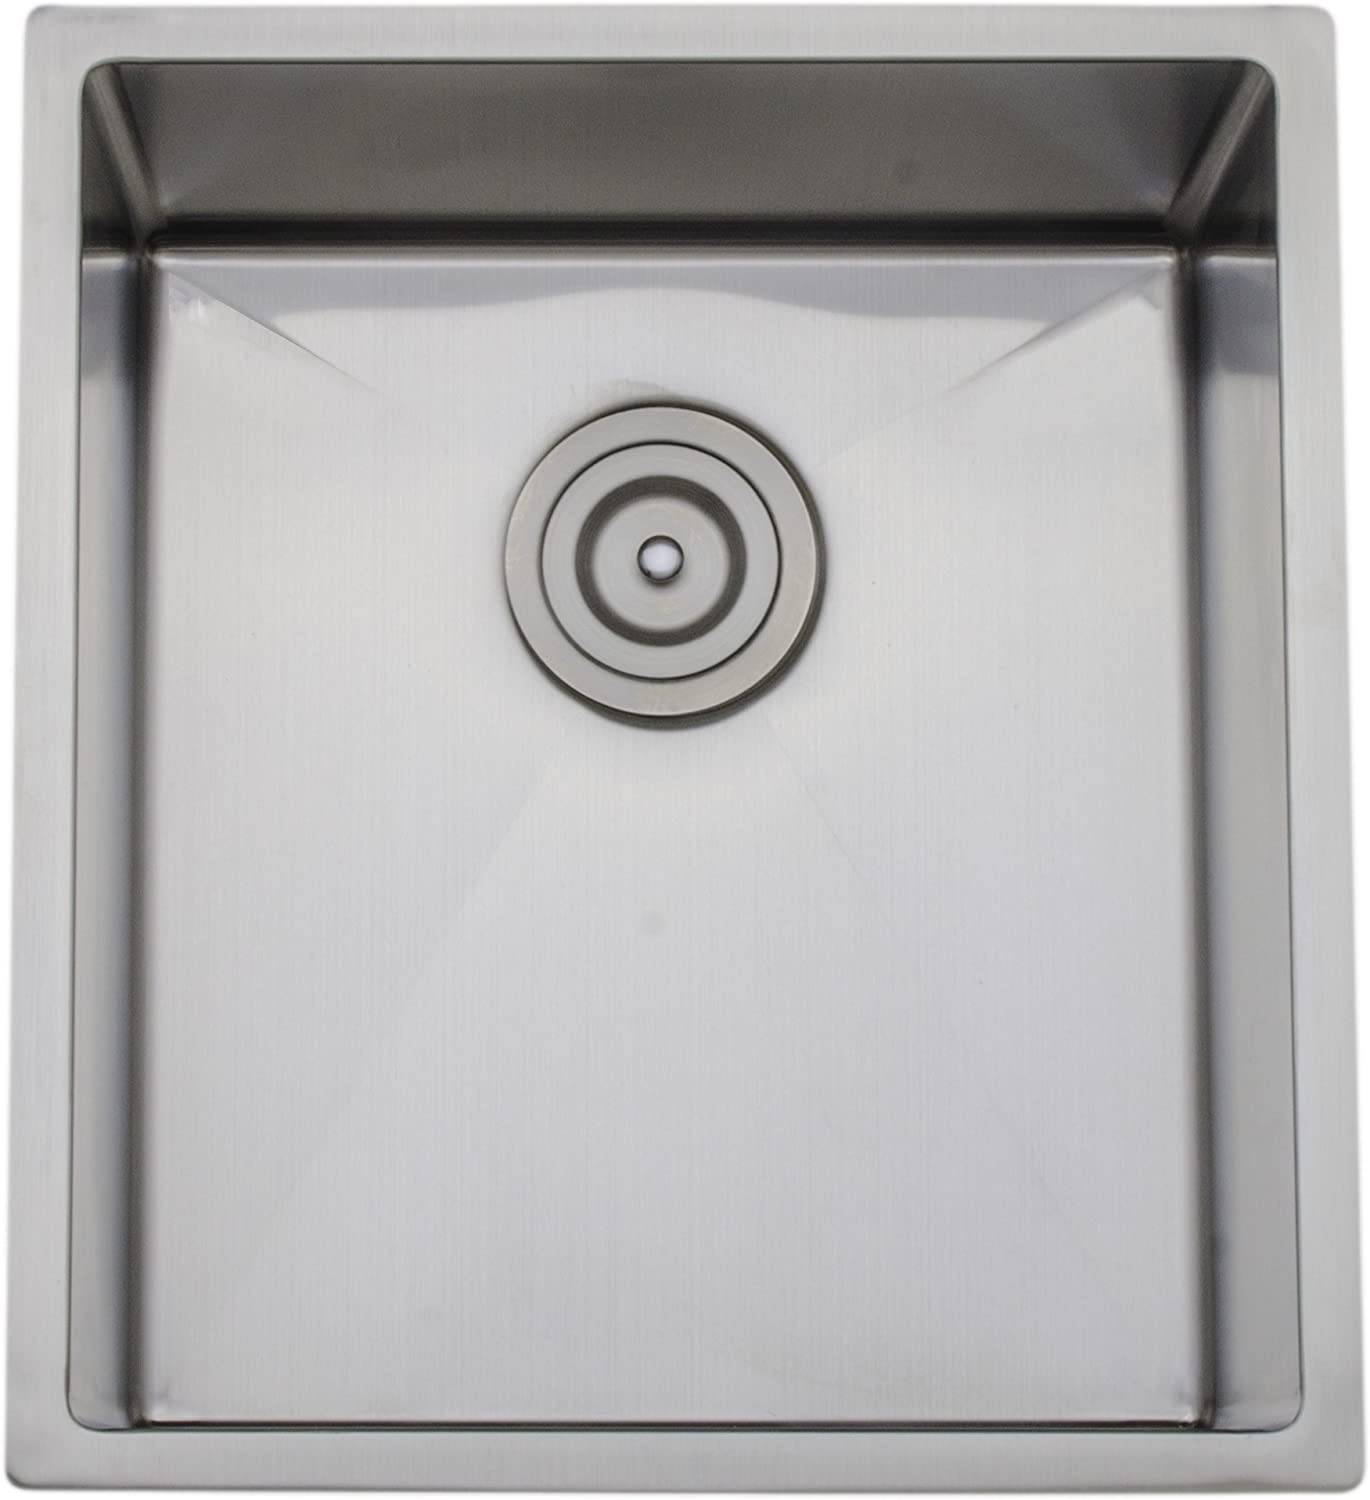 WELLS CSU1720-9 SINGLE BOWL STAINLESS STEEL SINK CHEF`S COLLECTION